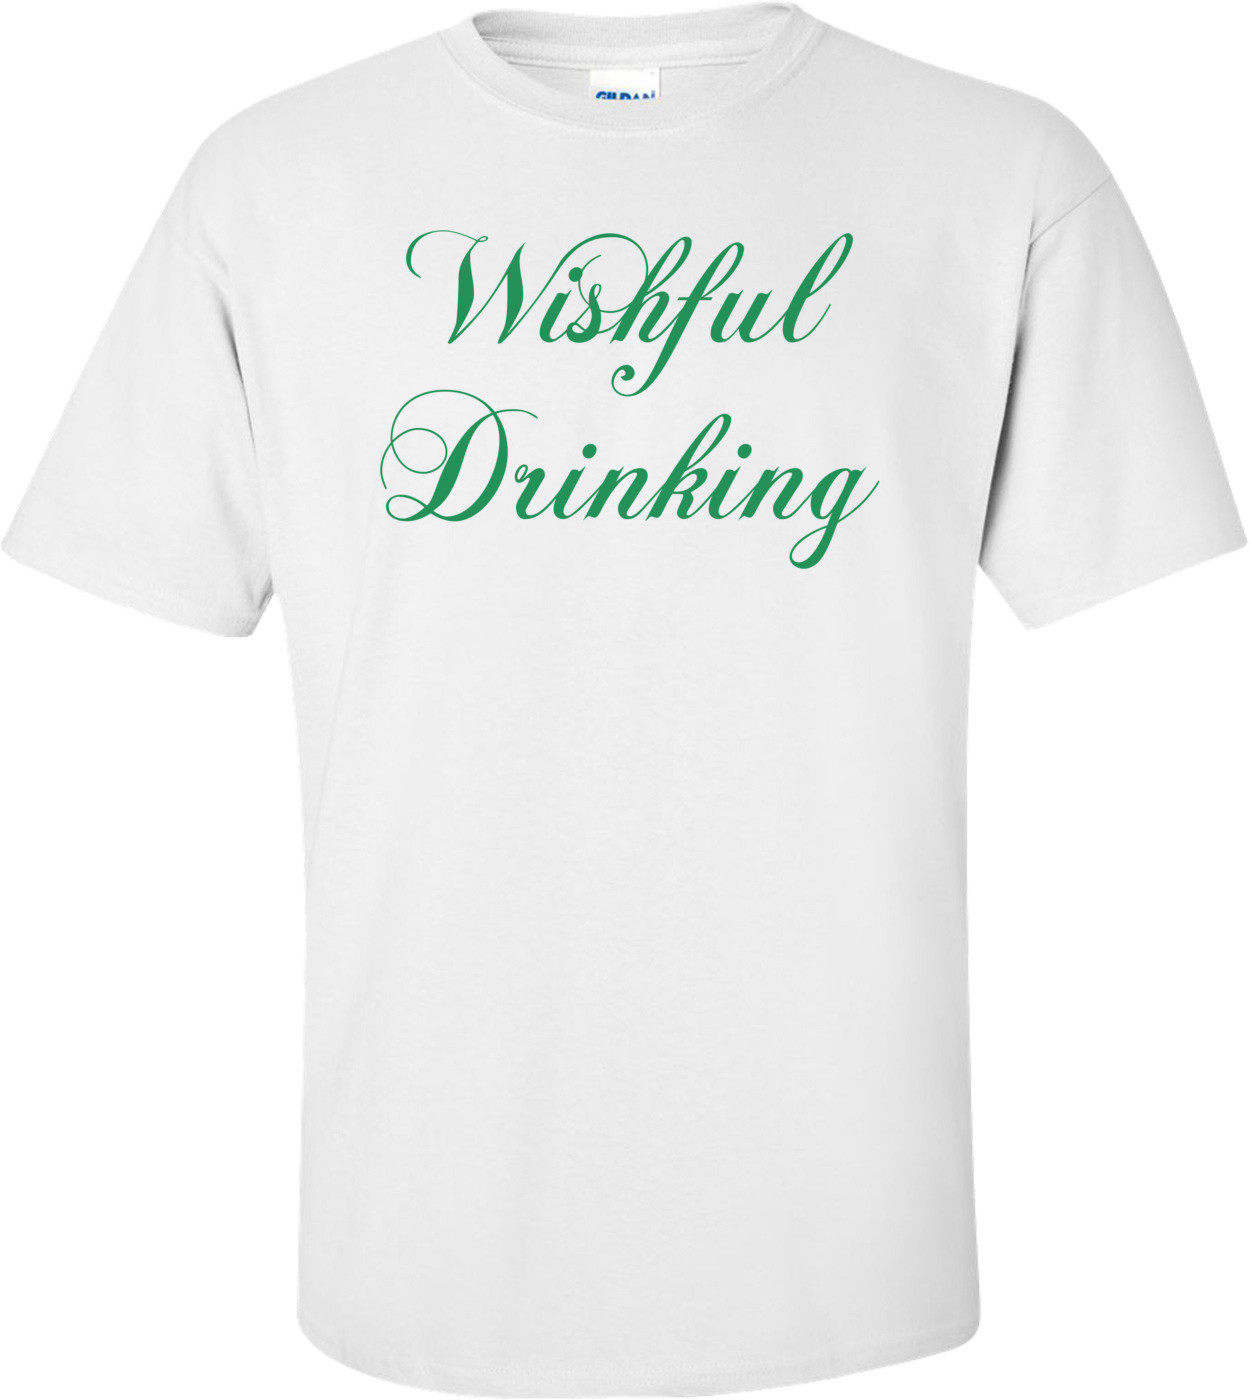 Wishful Drinking Shirt